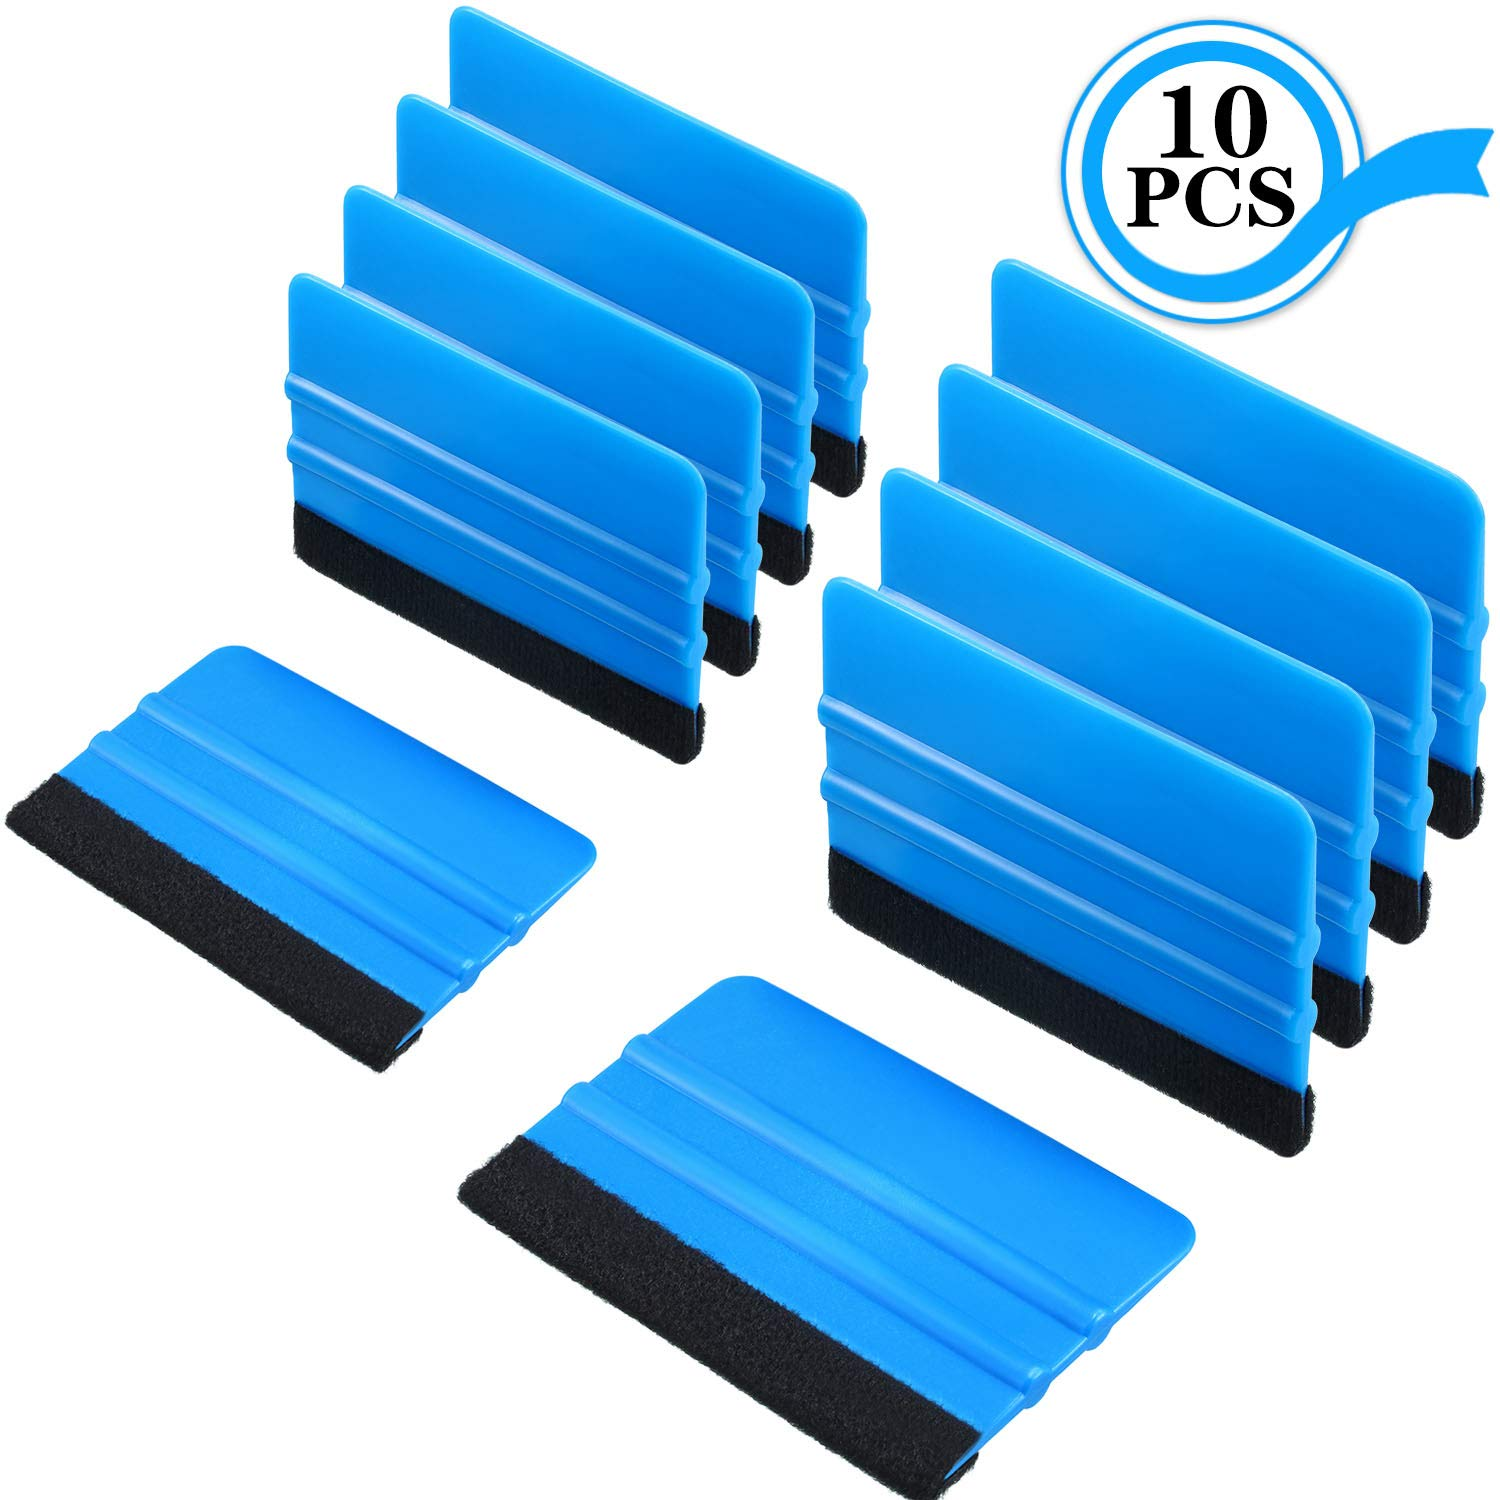 Blulu 10 Pieces Felt Edge Squeegee Car Wrapping Tools 4 Inch and 5 Inch Vinyl Scraper Decal Applicator Tool for Car Vinyl Wrap Window Tint Wallpaper Installation